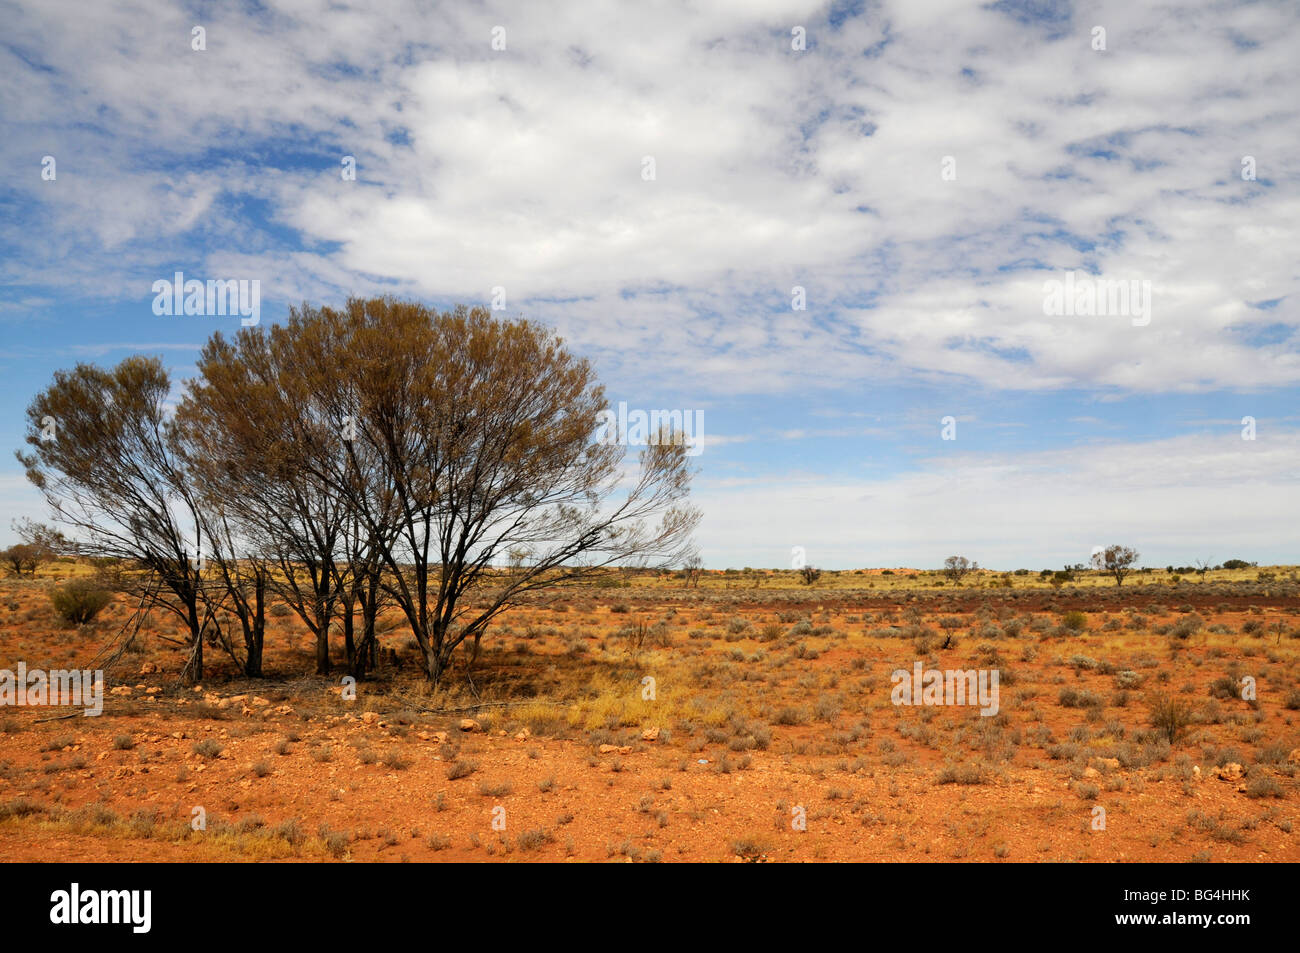 Part of the red desert with wild shrub and trees  in the Northern Territory of Australia - Stock Image